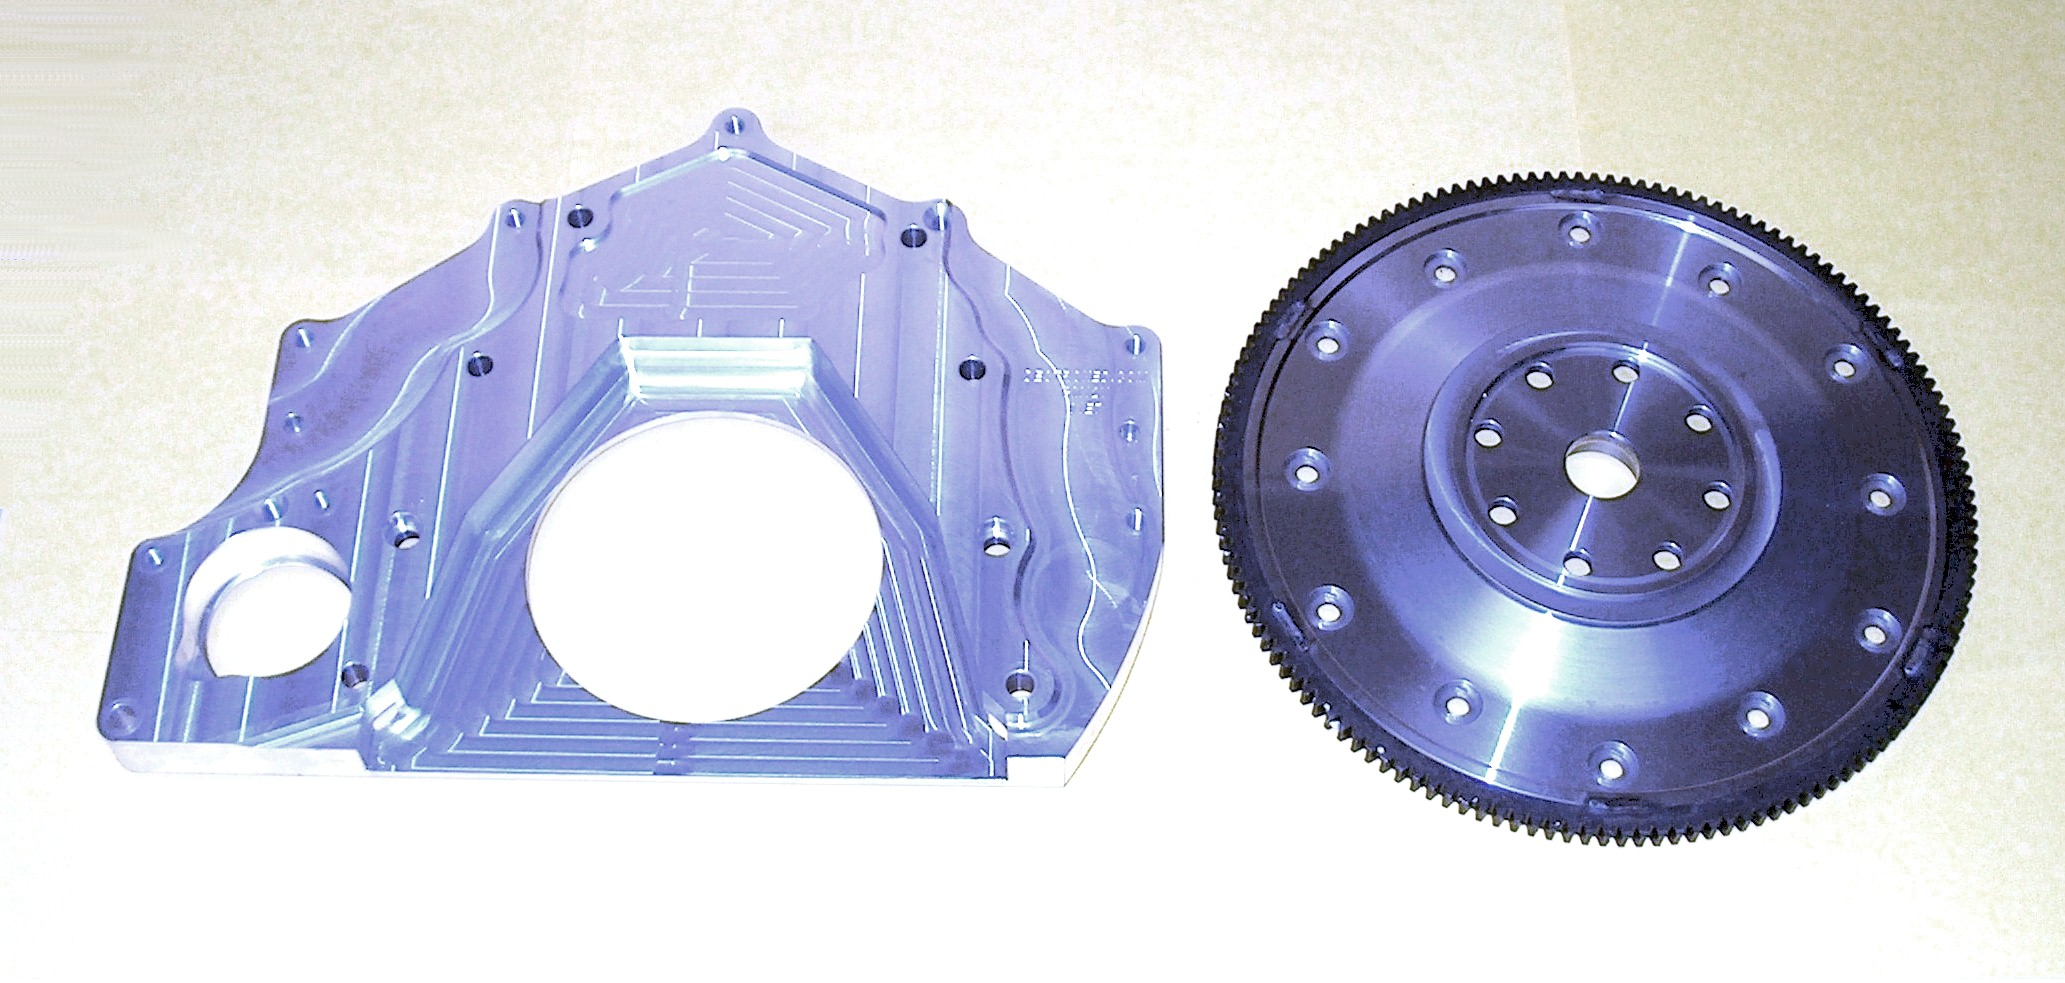 Cummins adapter plate and flywheel